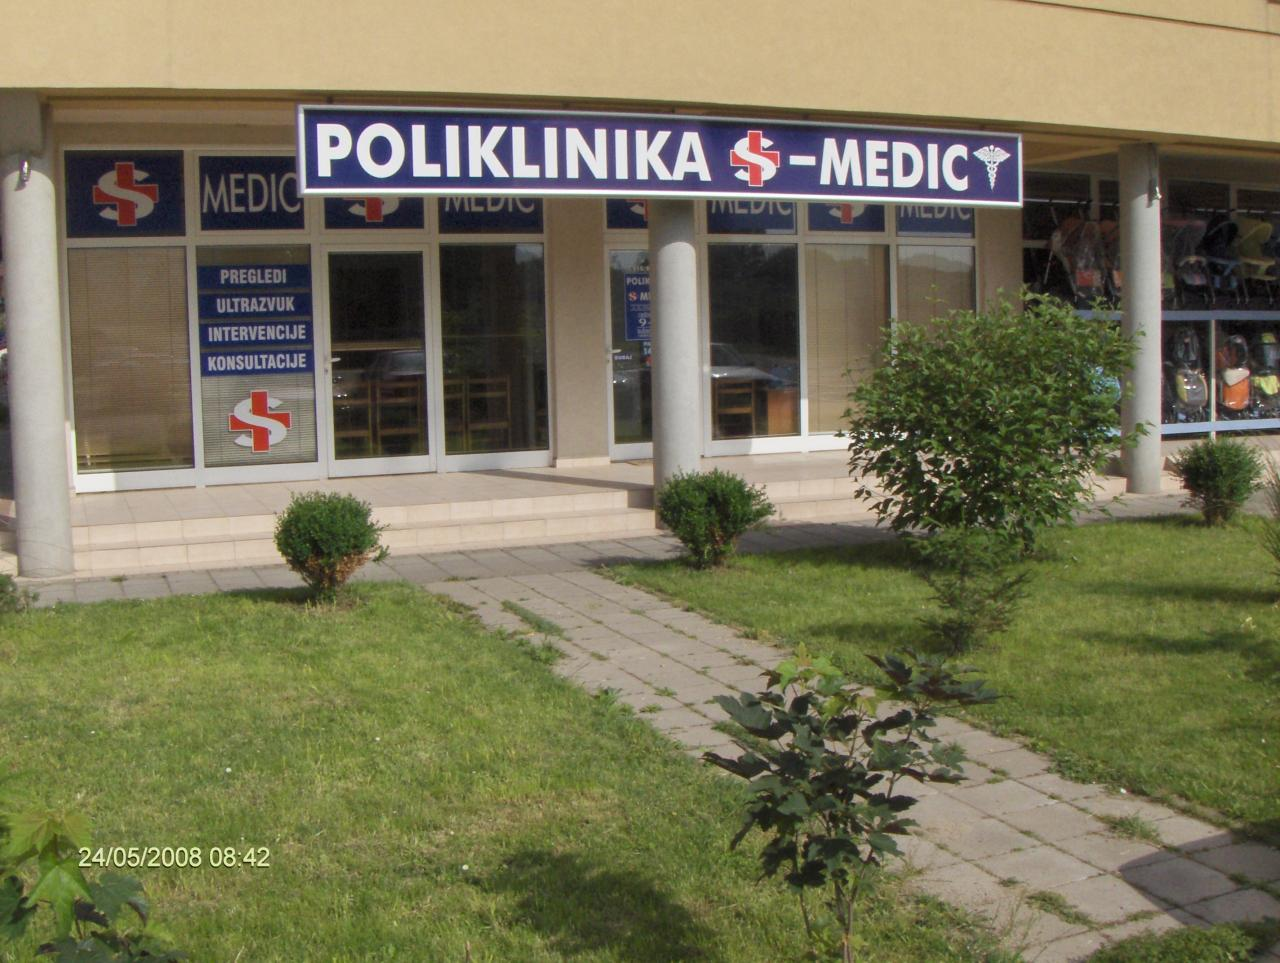 POLICLINIC S - MEDIC Polyclinics Loznica - Photo 1